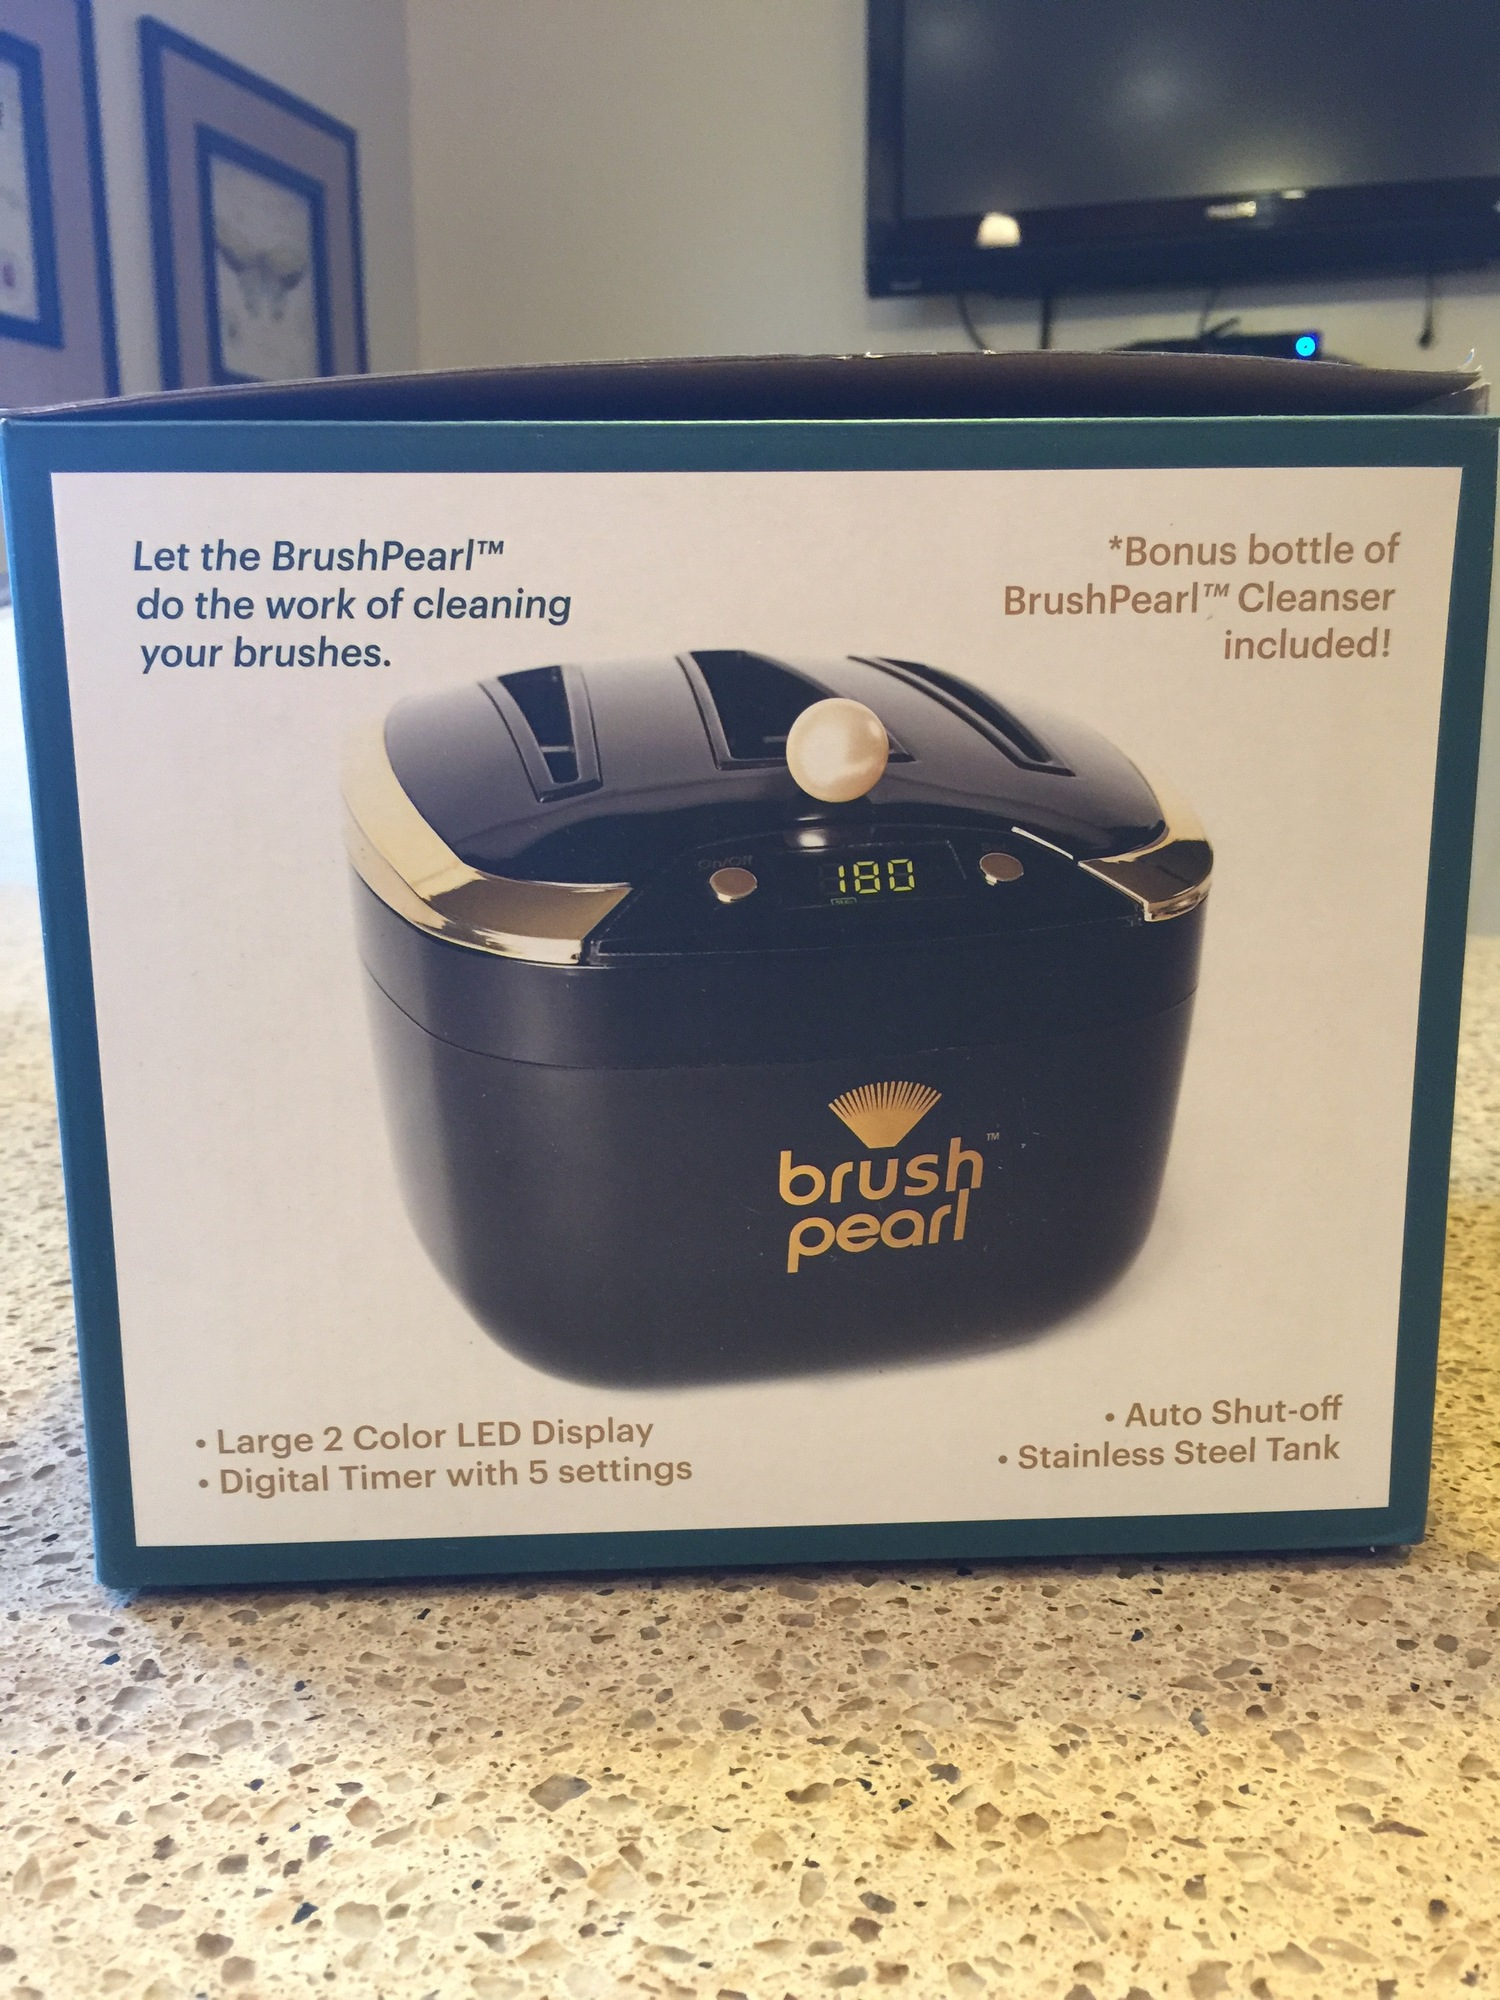 Brush Pearl Ultrasonic Brush Cleaner Review